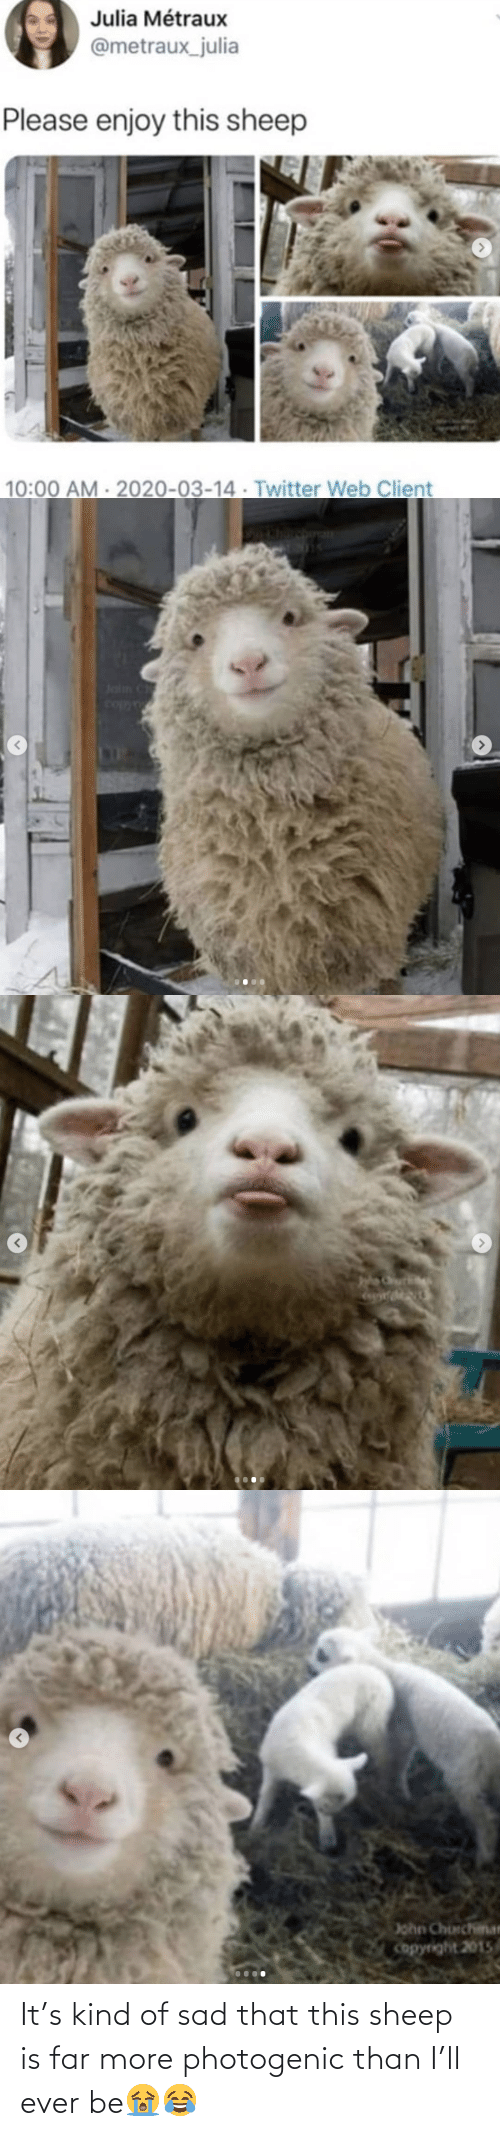 Sad: It's kind of sad that this sheep is far more photogenic than I'll ever be😭😂